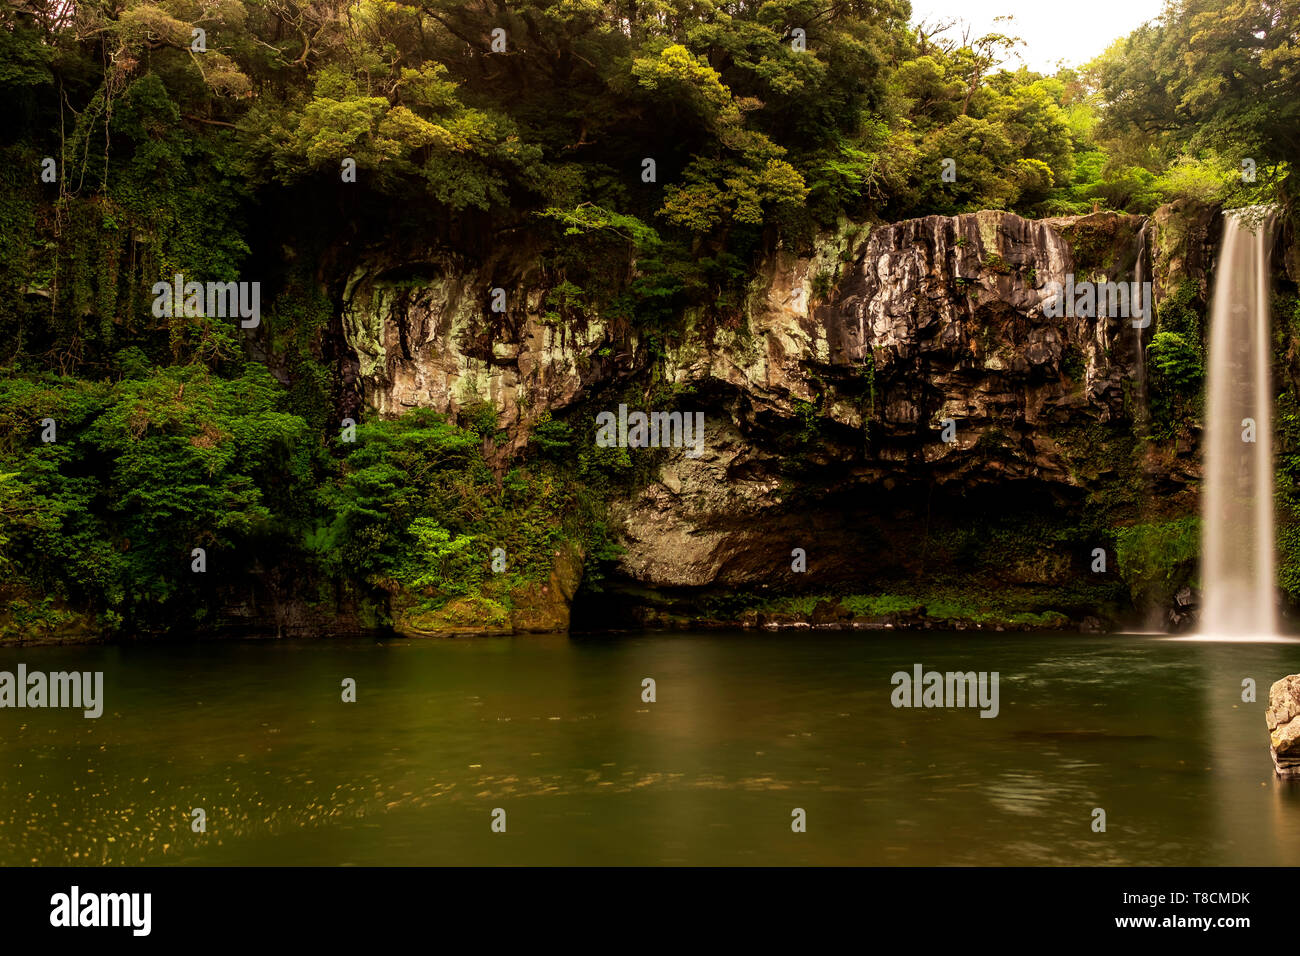 long exposure of waterfall and river with trees and stone in Jeju, South Korea - Stock Image